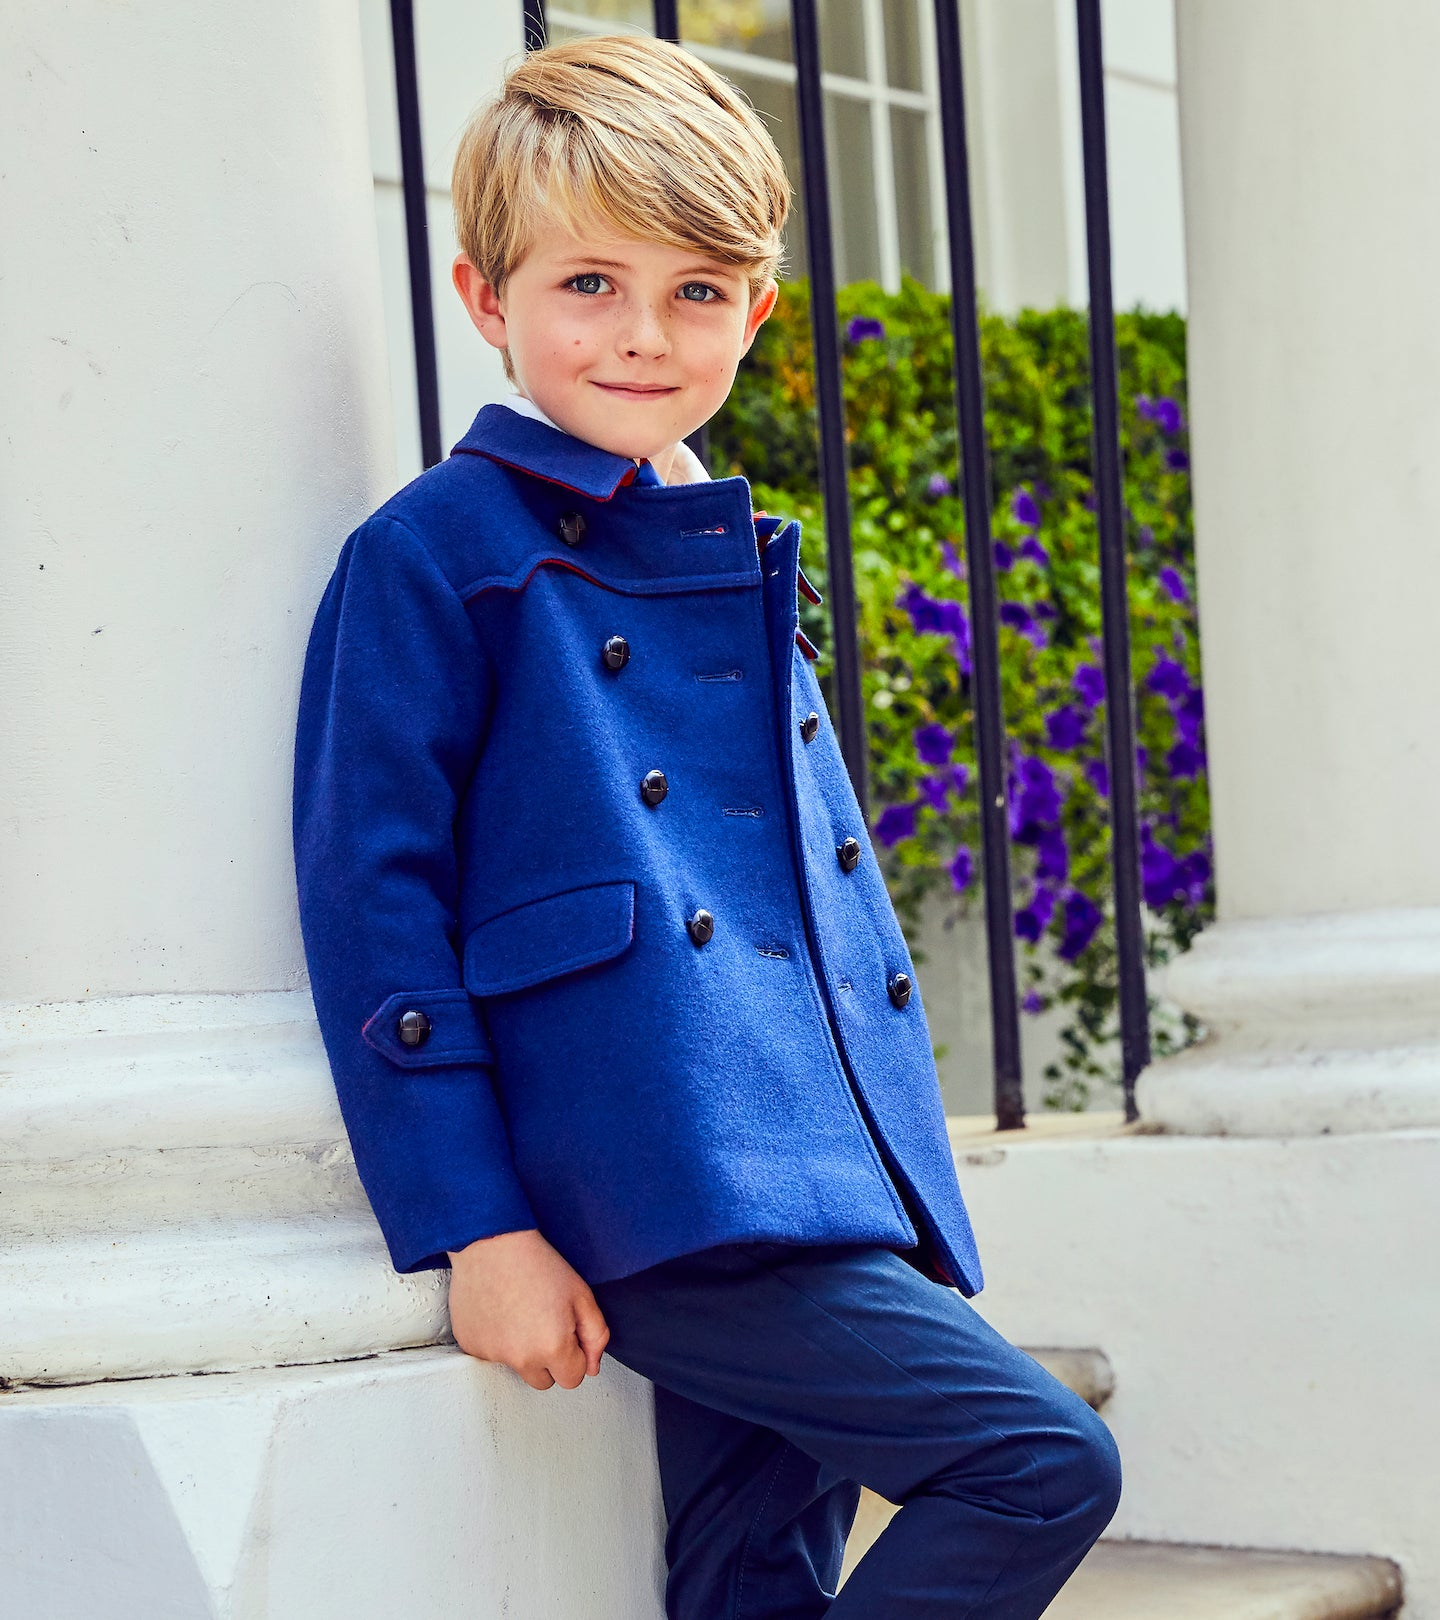 Luxury boys coats by Britannical luxury children's coats luxury kids coats luxury children's clothing made in Britain